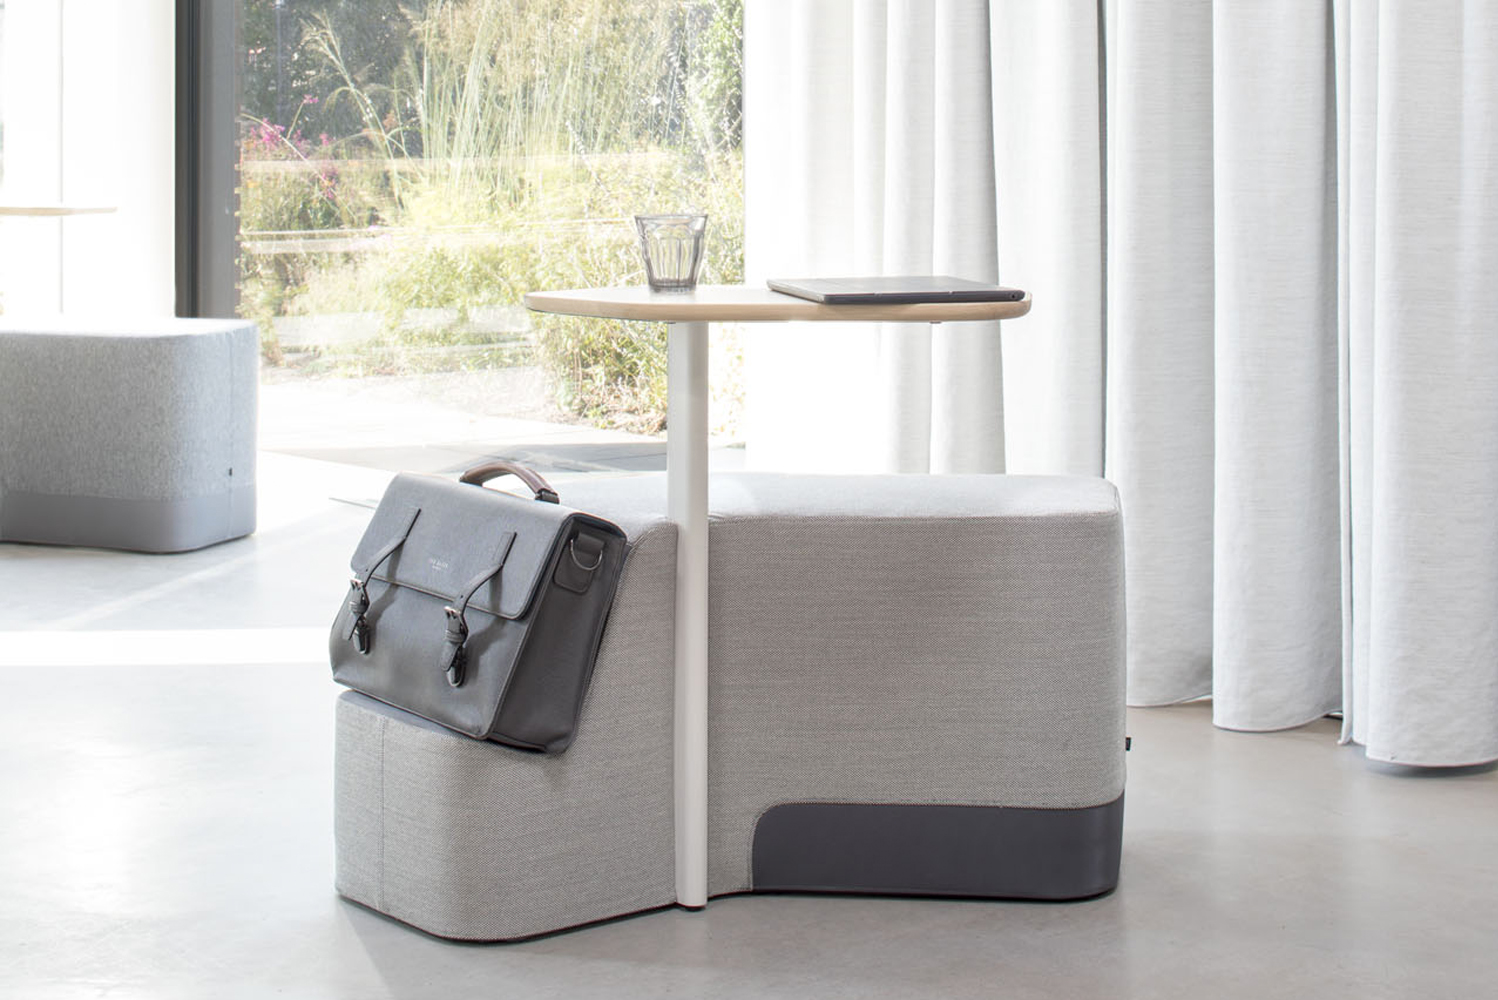 Introducing the Mono workstation by Arco.